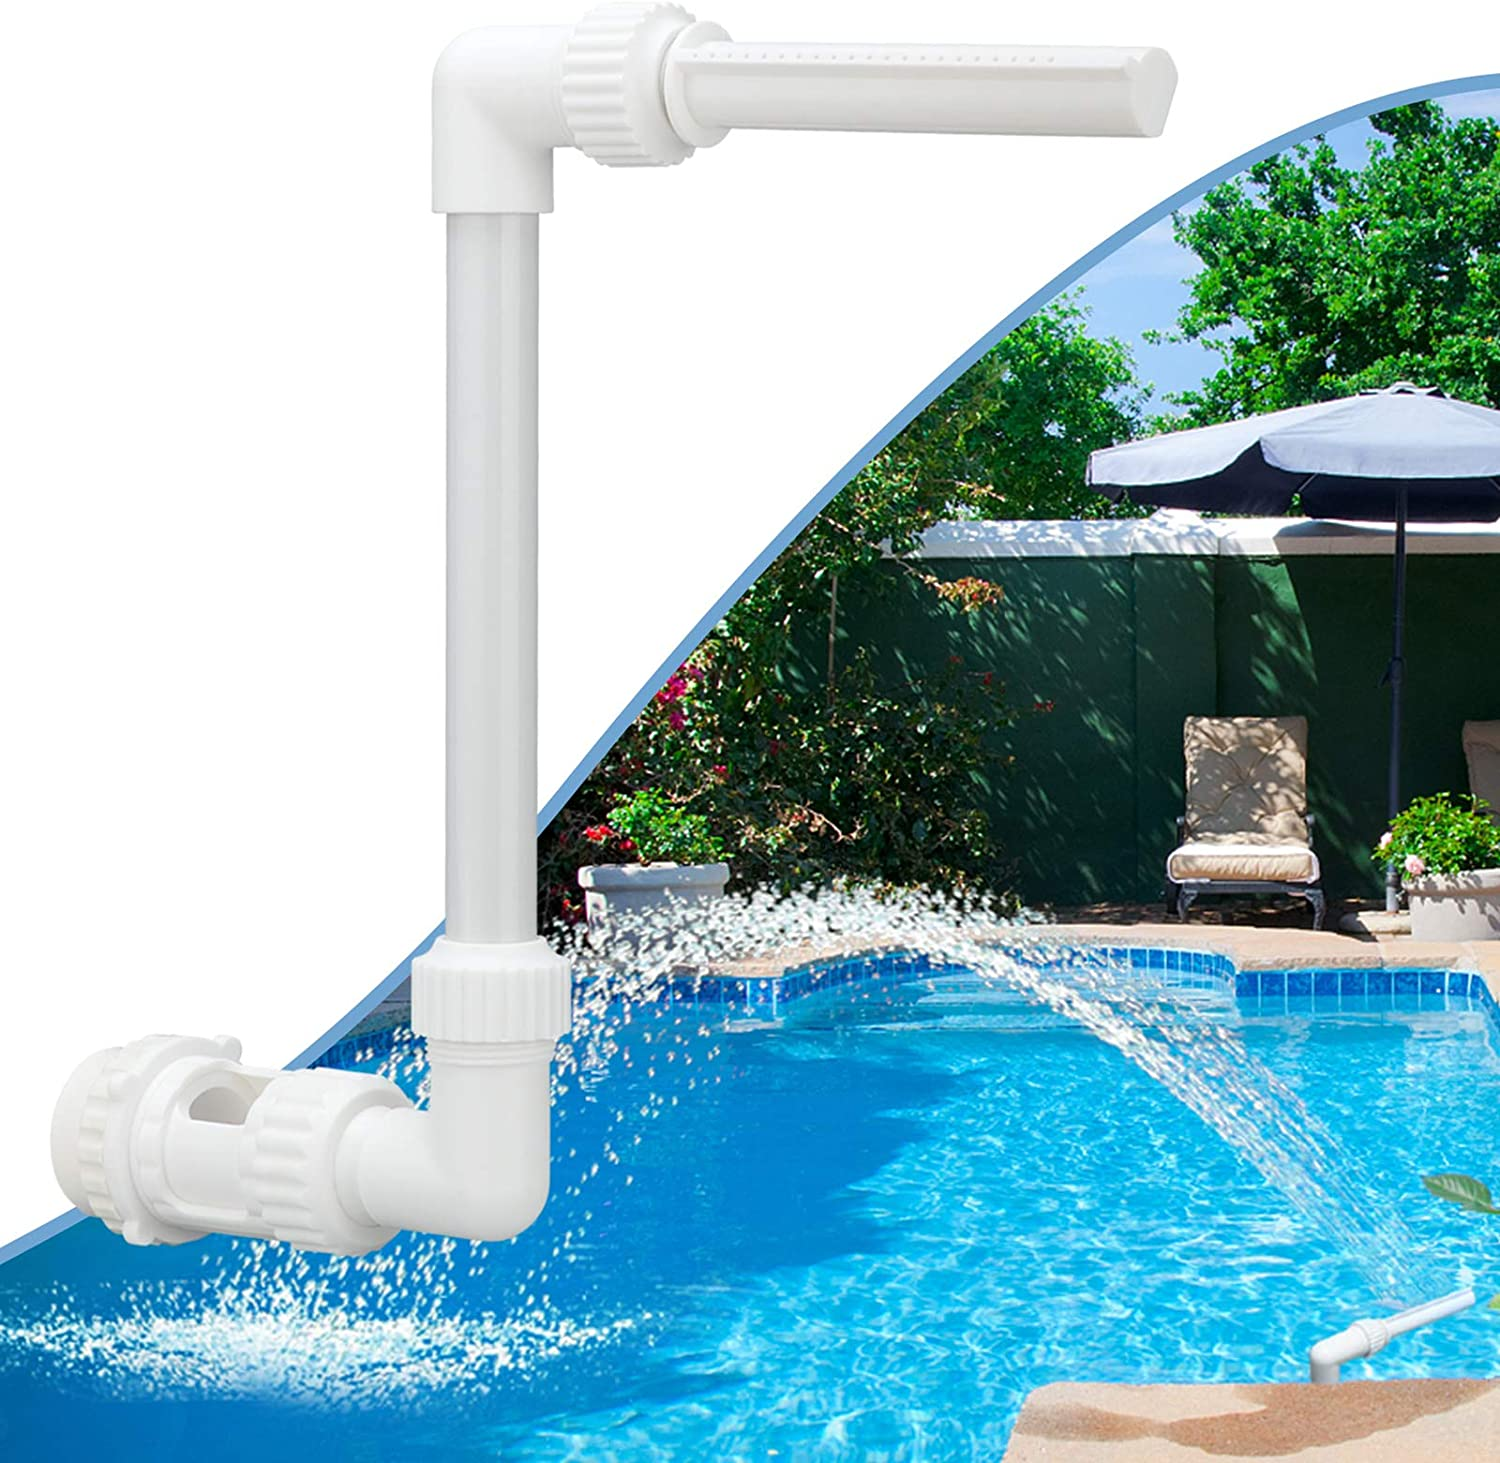 Zconiey Pool Waterfall Spray Pond Fountain Water Fun Sprinklers Above In Ground Swimming Pool Decor Kitchen Dining